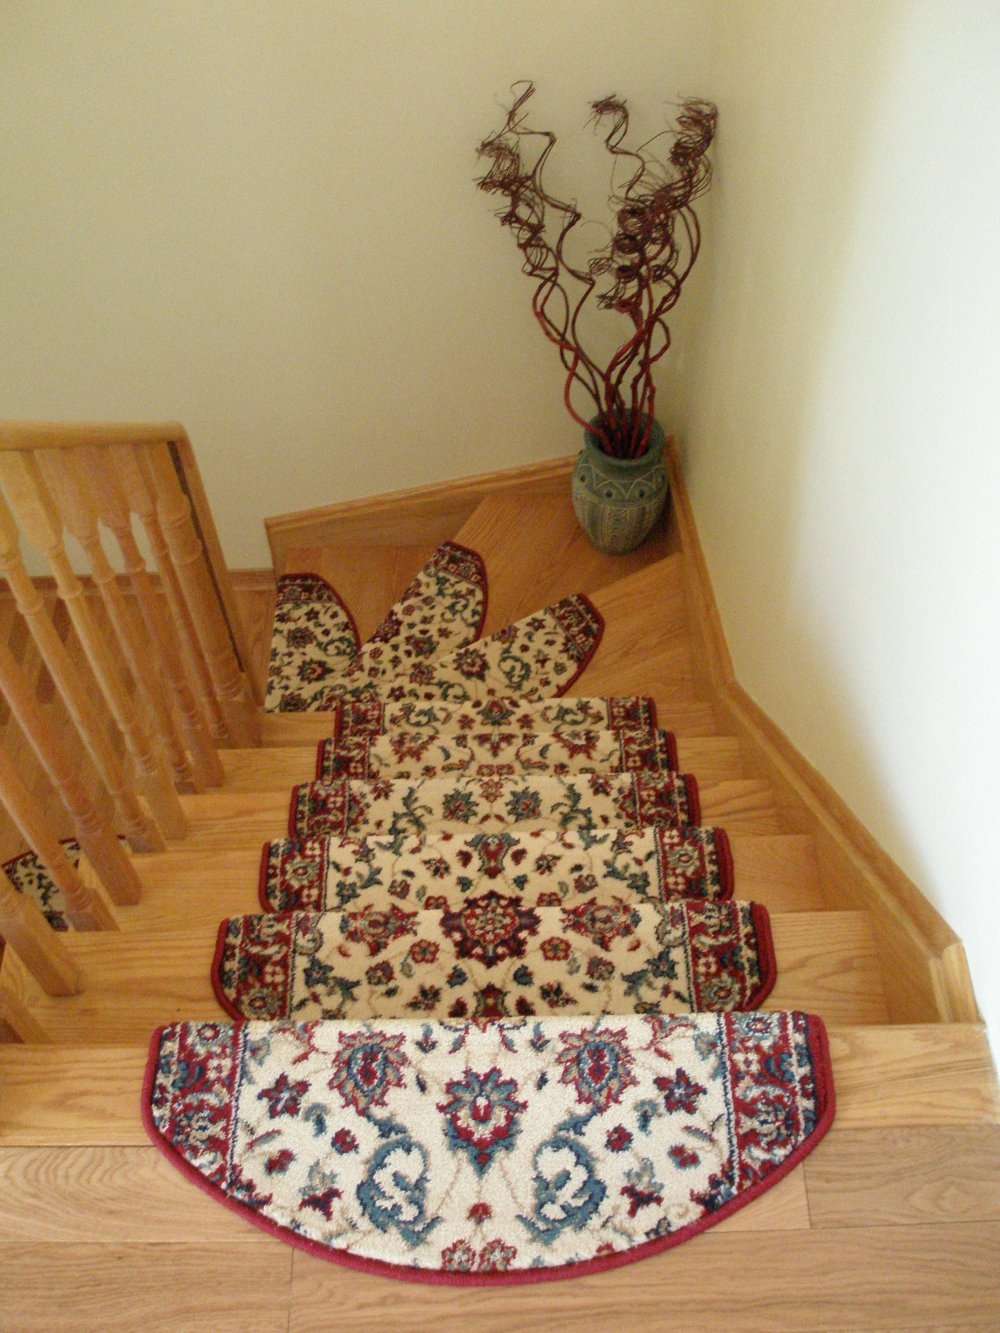 High Quality Carpet Stair Treads Made In Europe Buy In Canada In Carpet Stair Treads Set Of  (Image 9 of 15)